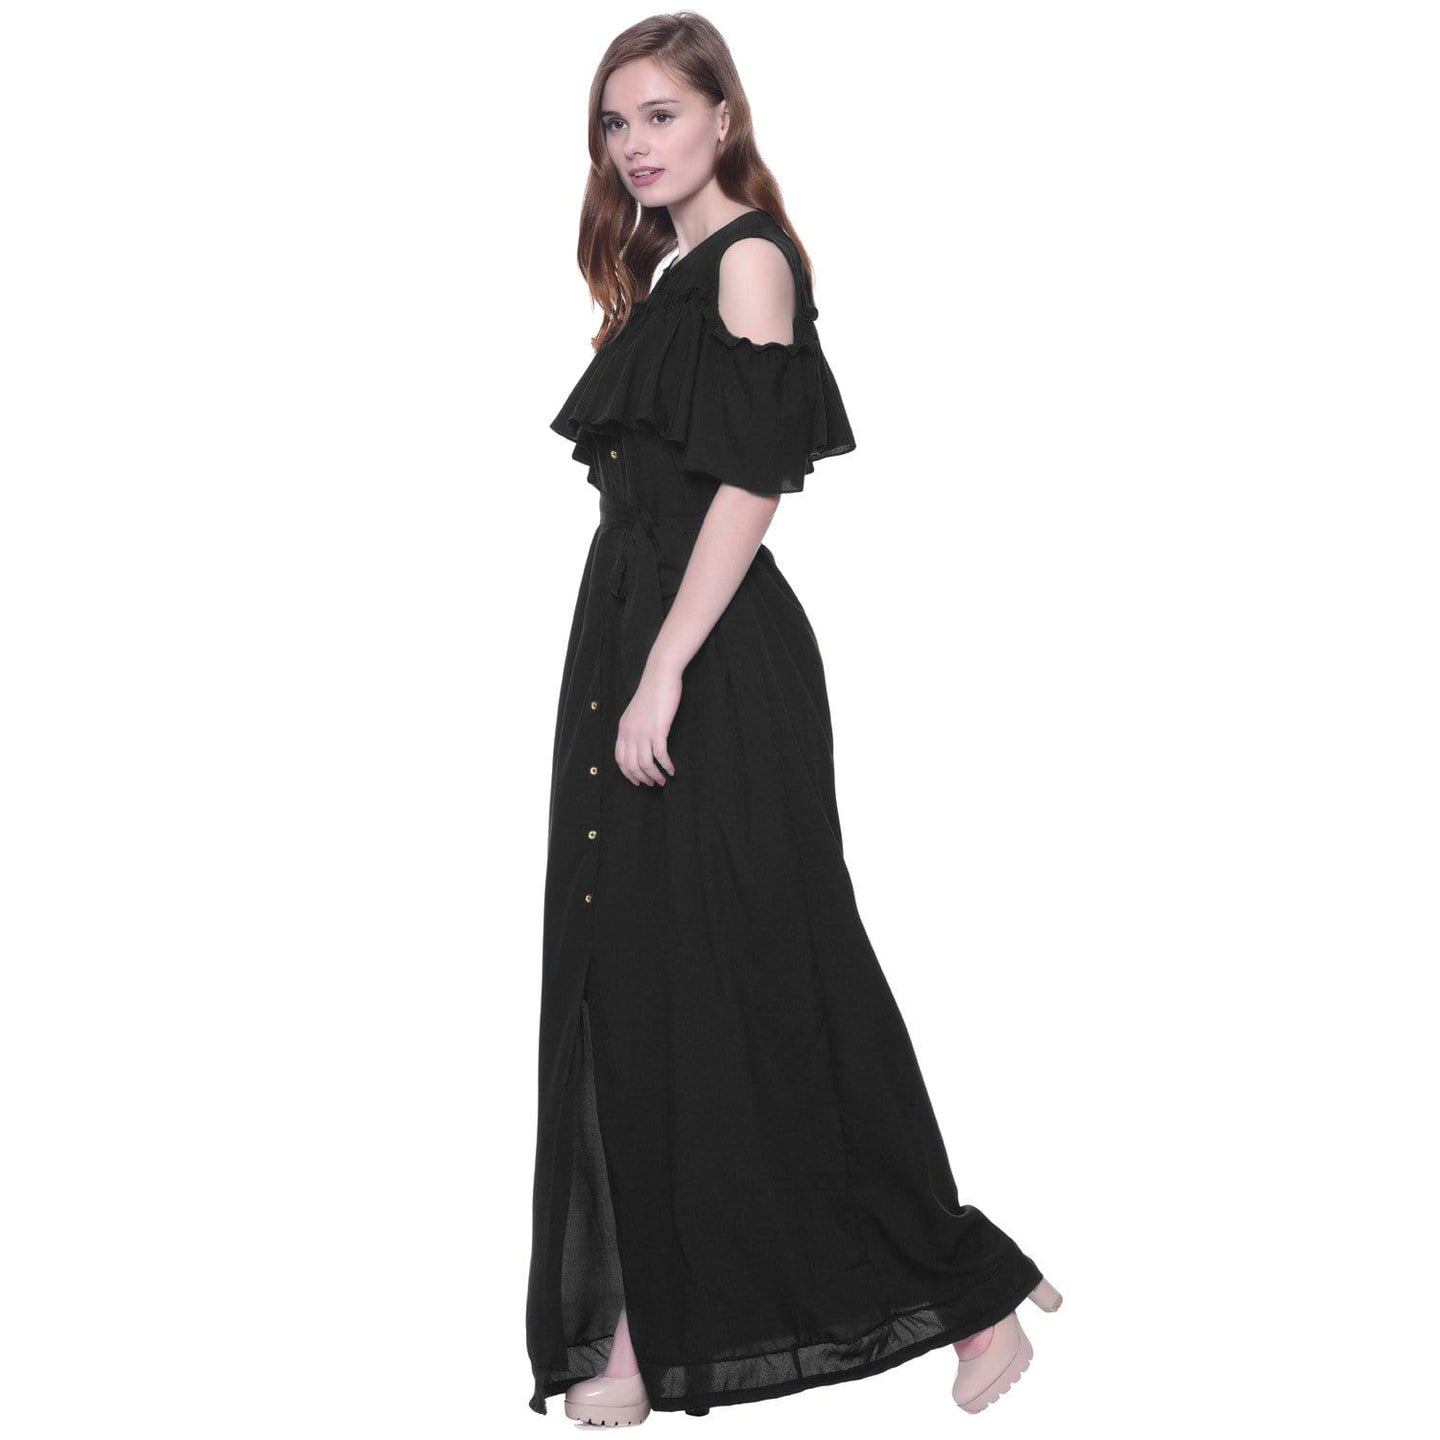 d34f3637fadcb Ruffled Buttoned Cold Shoulder Black Maxi Maternity Dress – Uptownie